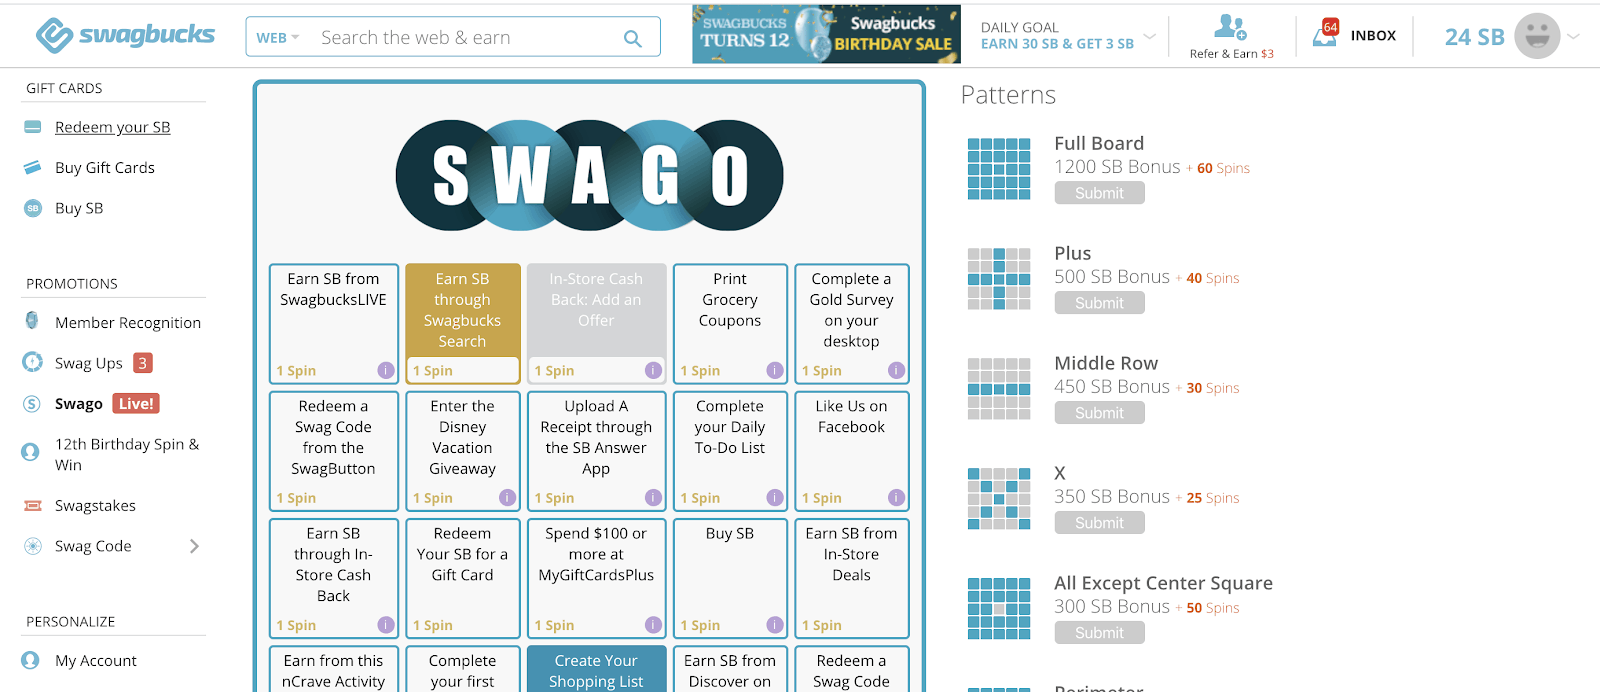 Swagbucks Swago Card